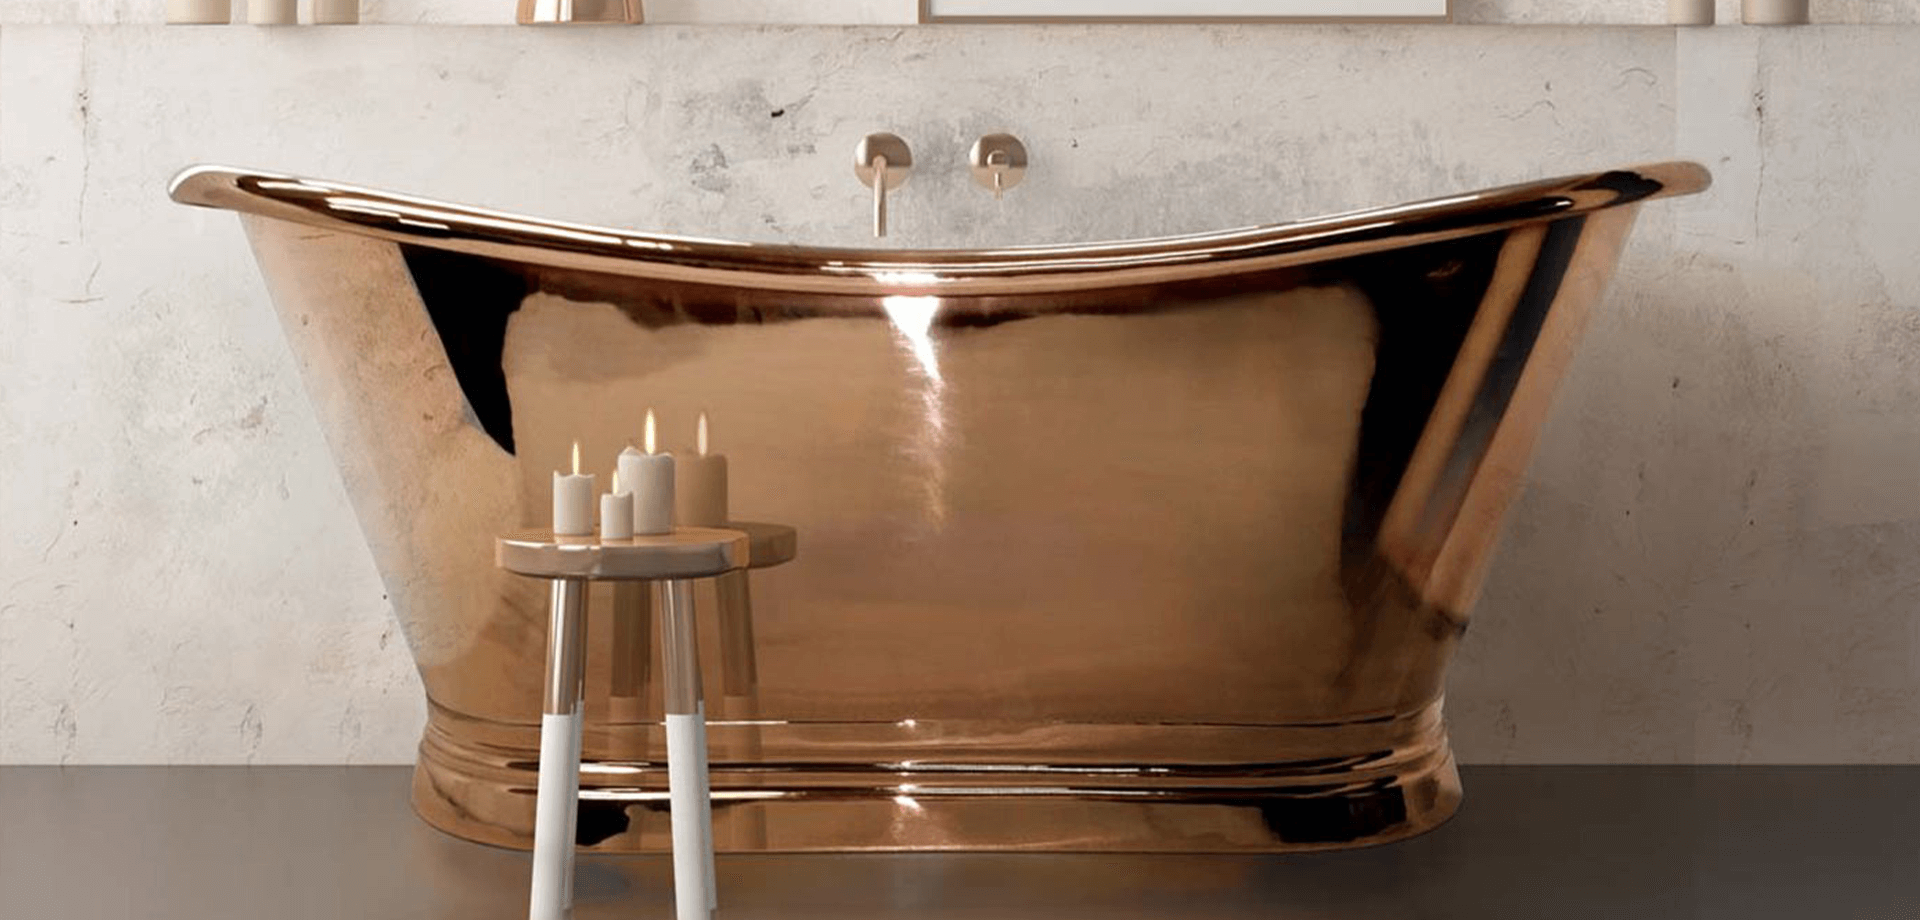 The Aesthetic Beauty And Practical Benefits Of A Copper Bath